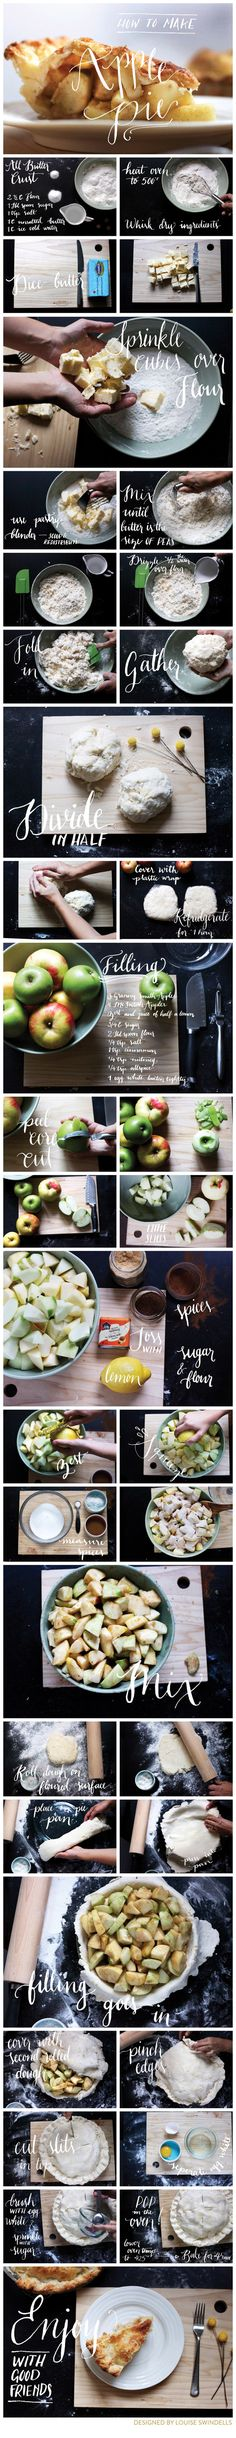 How to Make Apple Pie- A Visual Recipe and Infographic by Louise Swindells